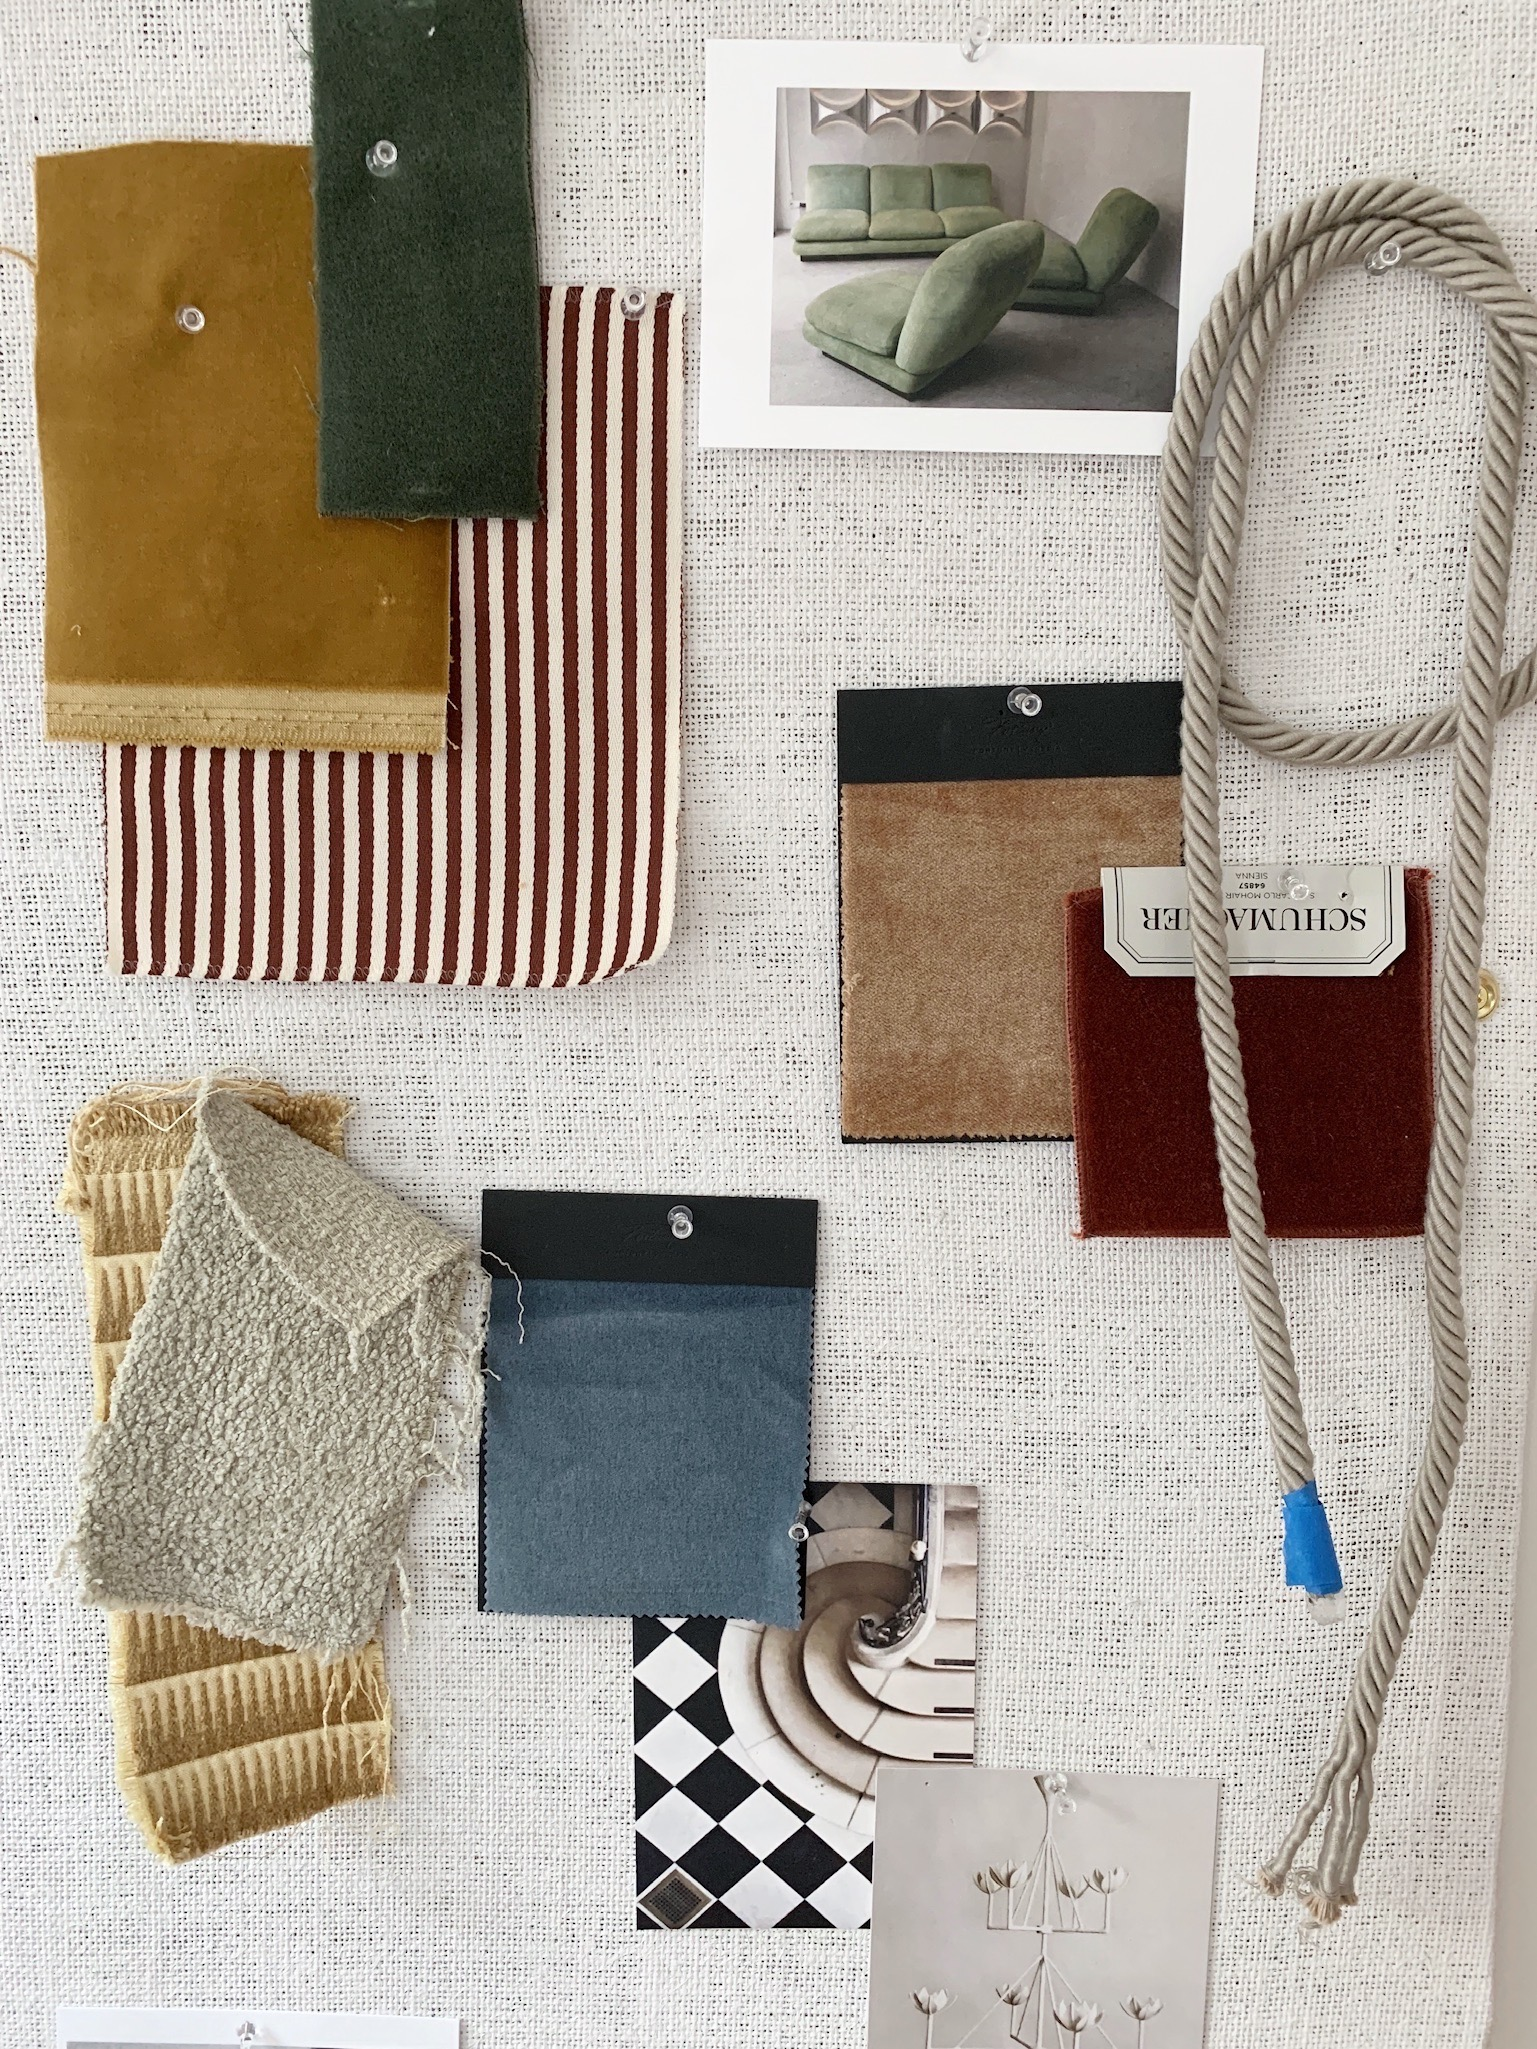 How to Make the Swooniest Pin Boards